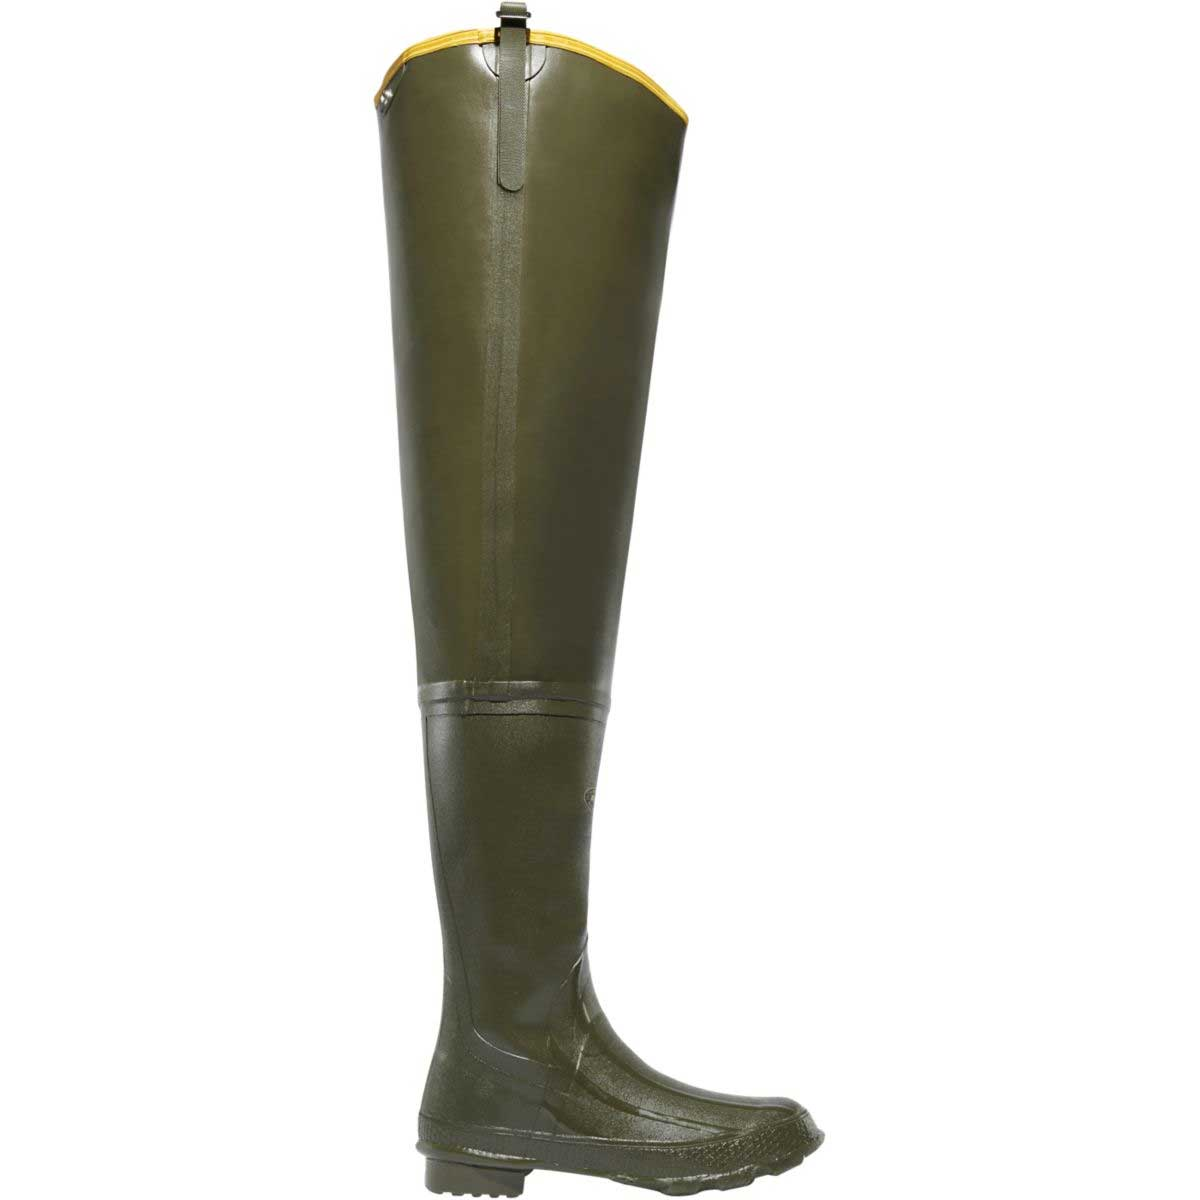 Lacrosse Big Chief Uninsulated Rubber Hip Wader Boot_1.jpg